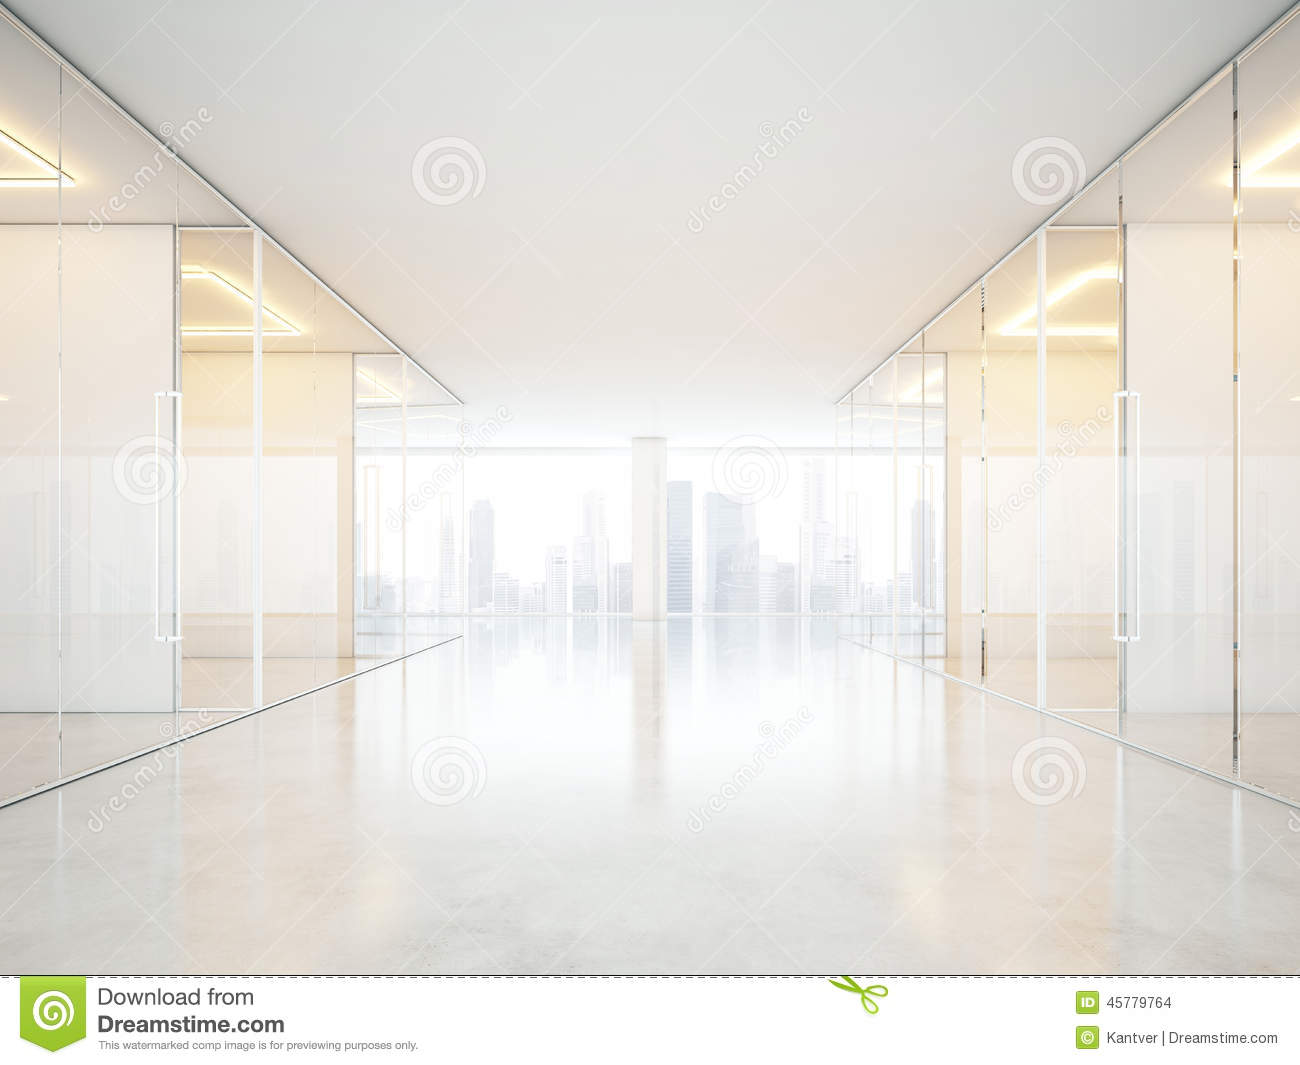 Interior office windows - White Office Interior With Panoramic Windows Stock Photo